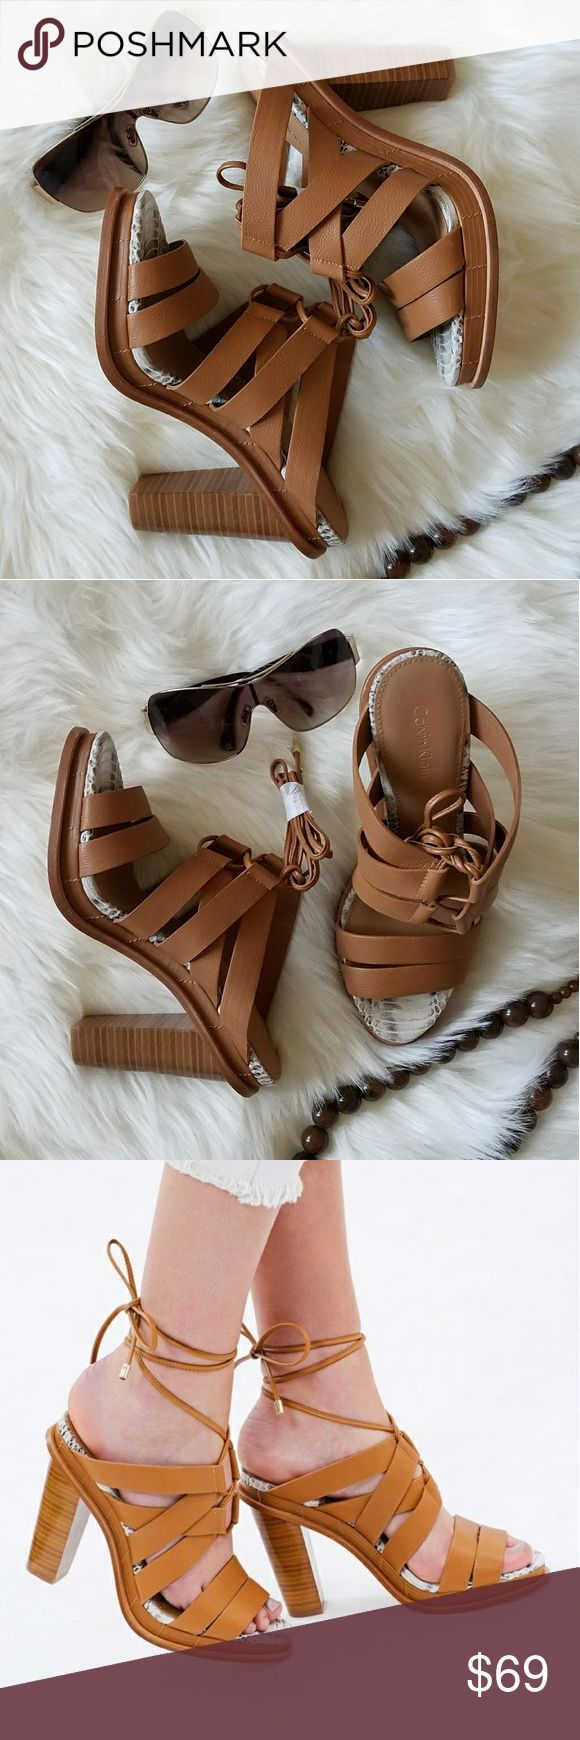 Calvin Klein strappy heel sandal New in box.   Calvin Klein leather strappy, lace up heel sandal.  Super cute and stylish.   Smoke free and pet free home. Calvin Klein Shoes Sandals